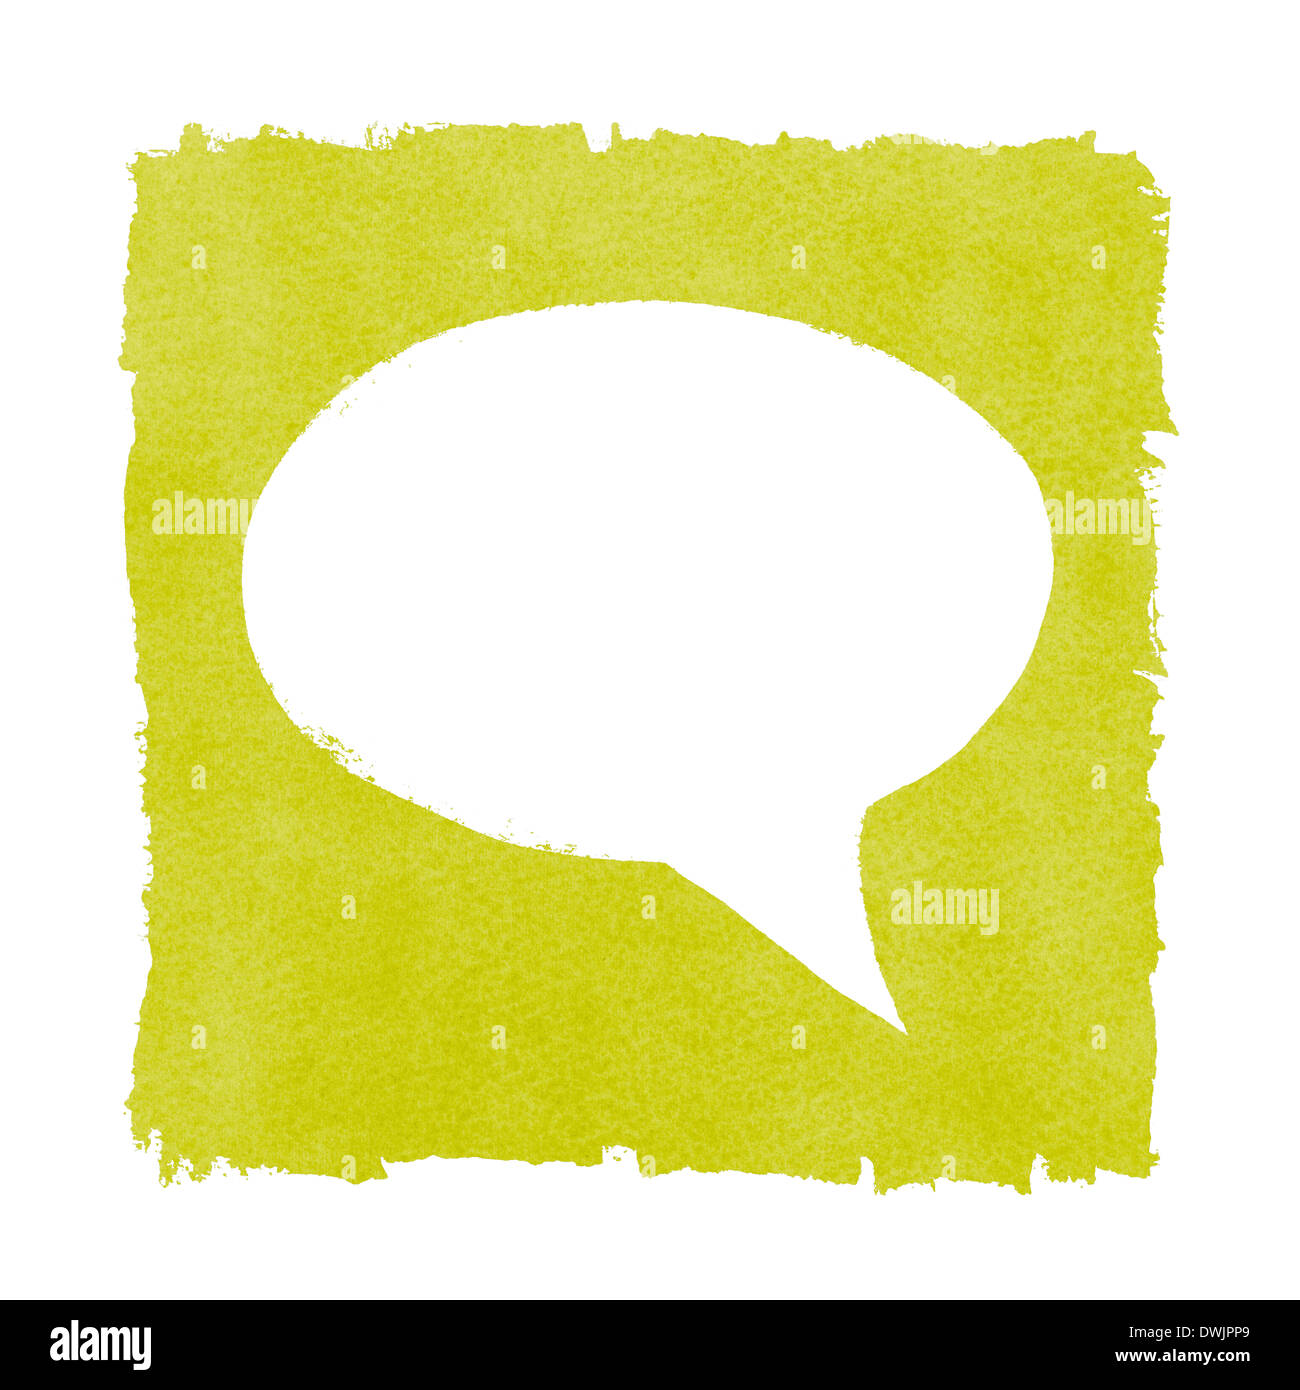 Social Media Speech Bubble Painted Green Box Frame - Stock Image